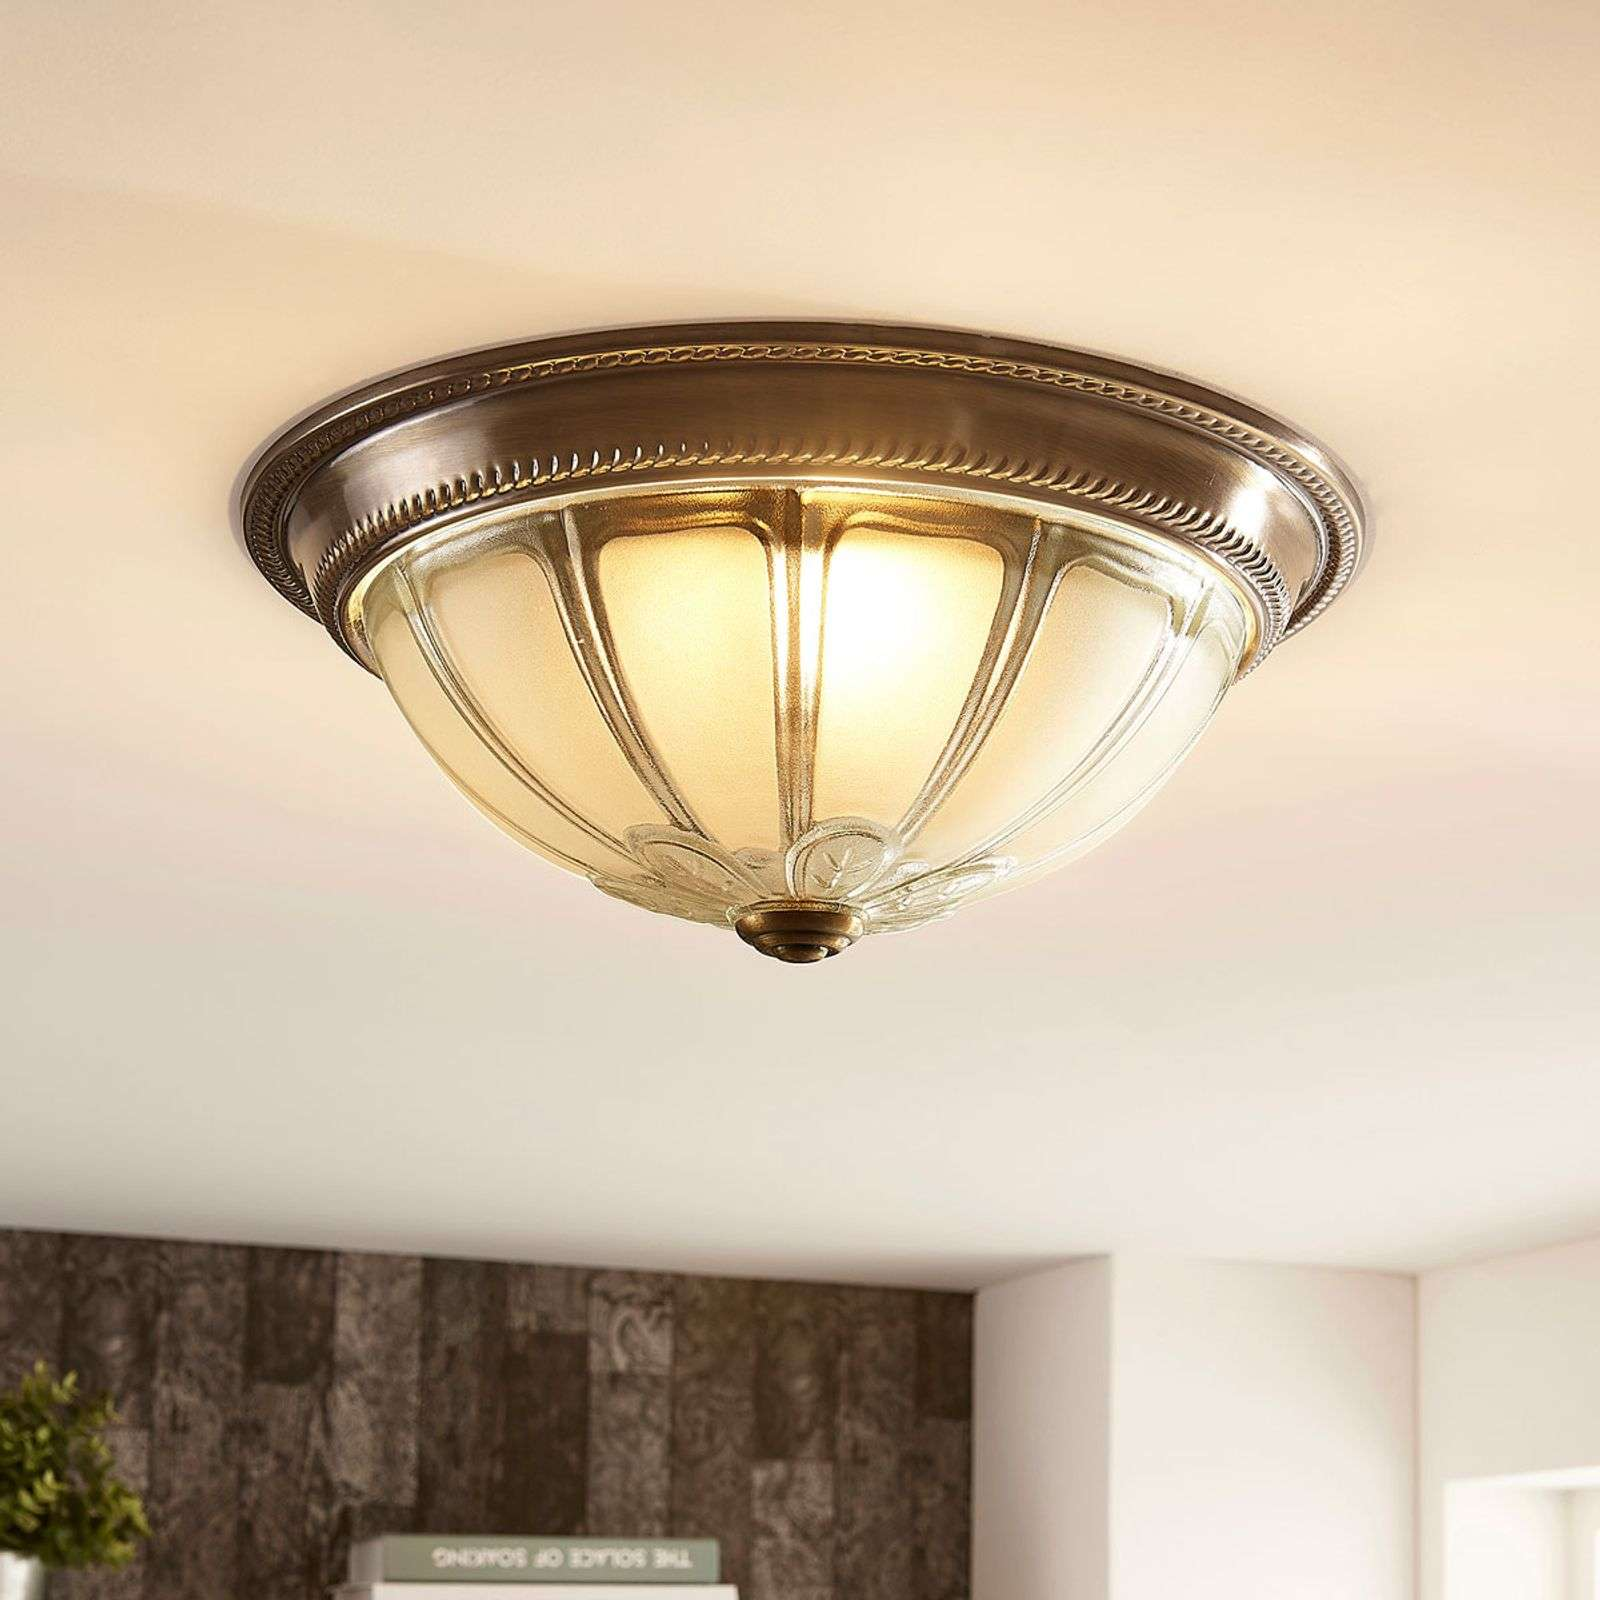 Plafonnier LED Henja rond, dimmable 4 positions